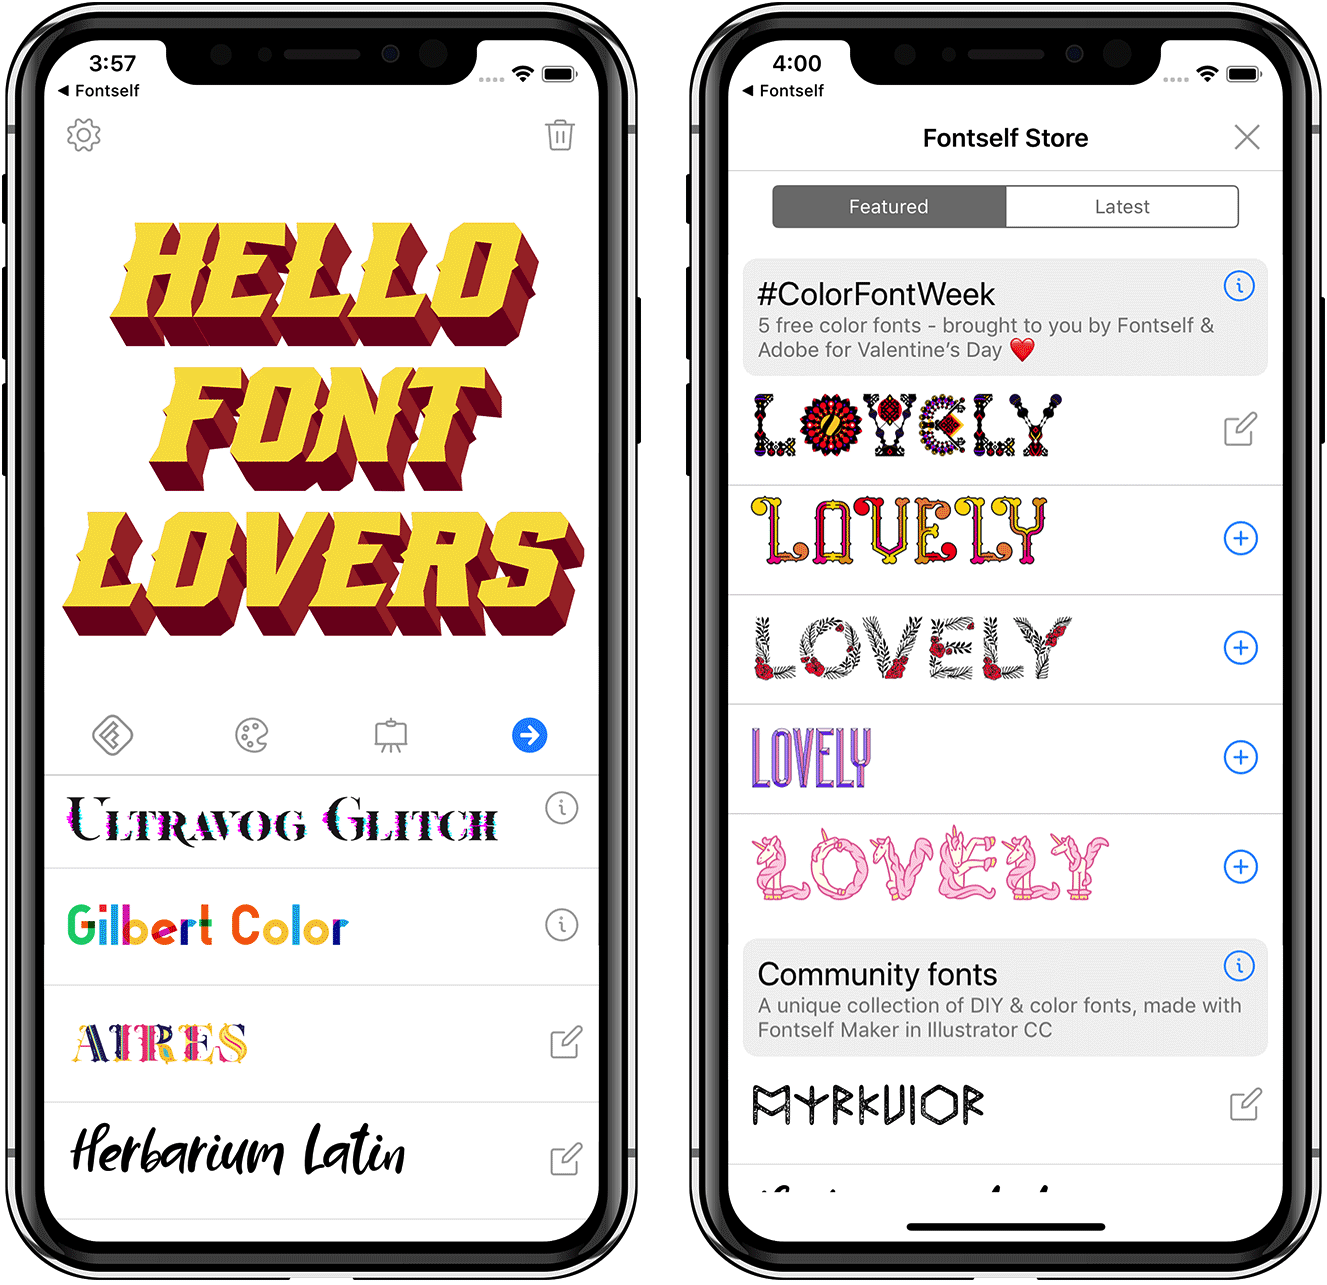 Fontself iOS app